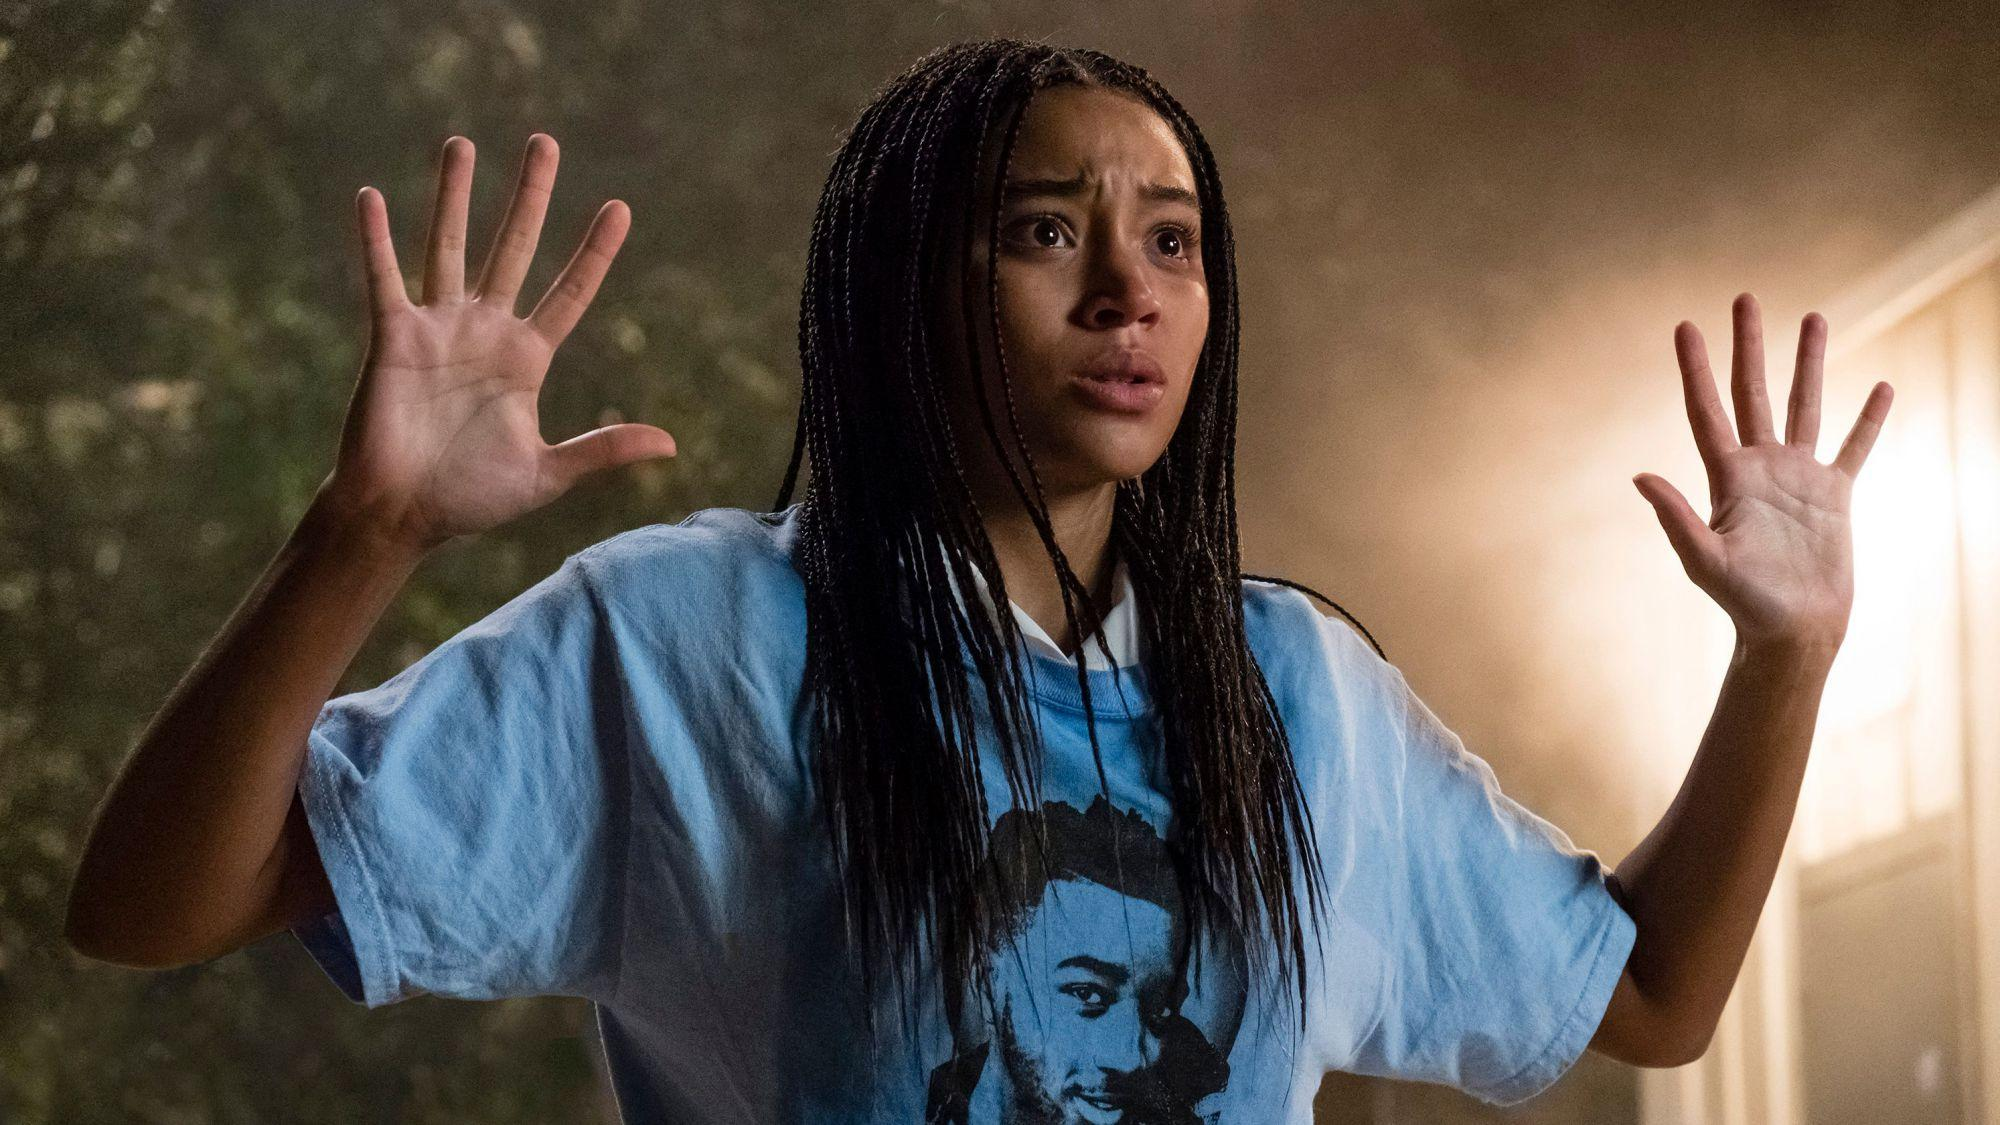 Amandla Stenberg delivers captivating performance as Starr Carter in a movie that addresses issues of police brutality and racism against African Americans in modern America.